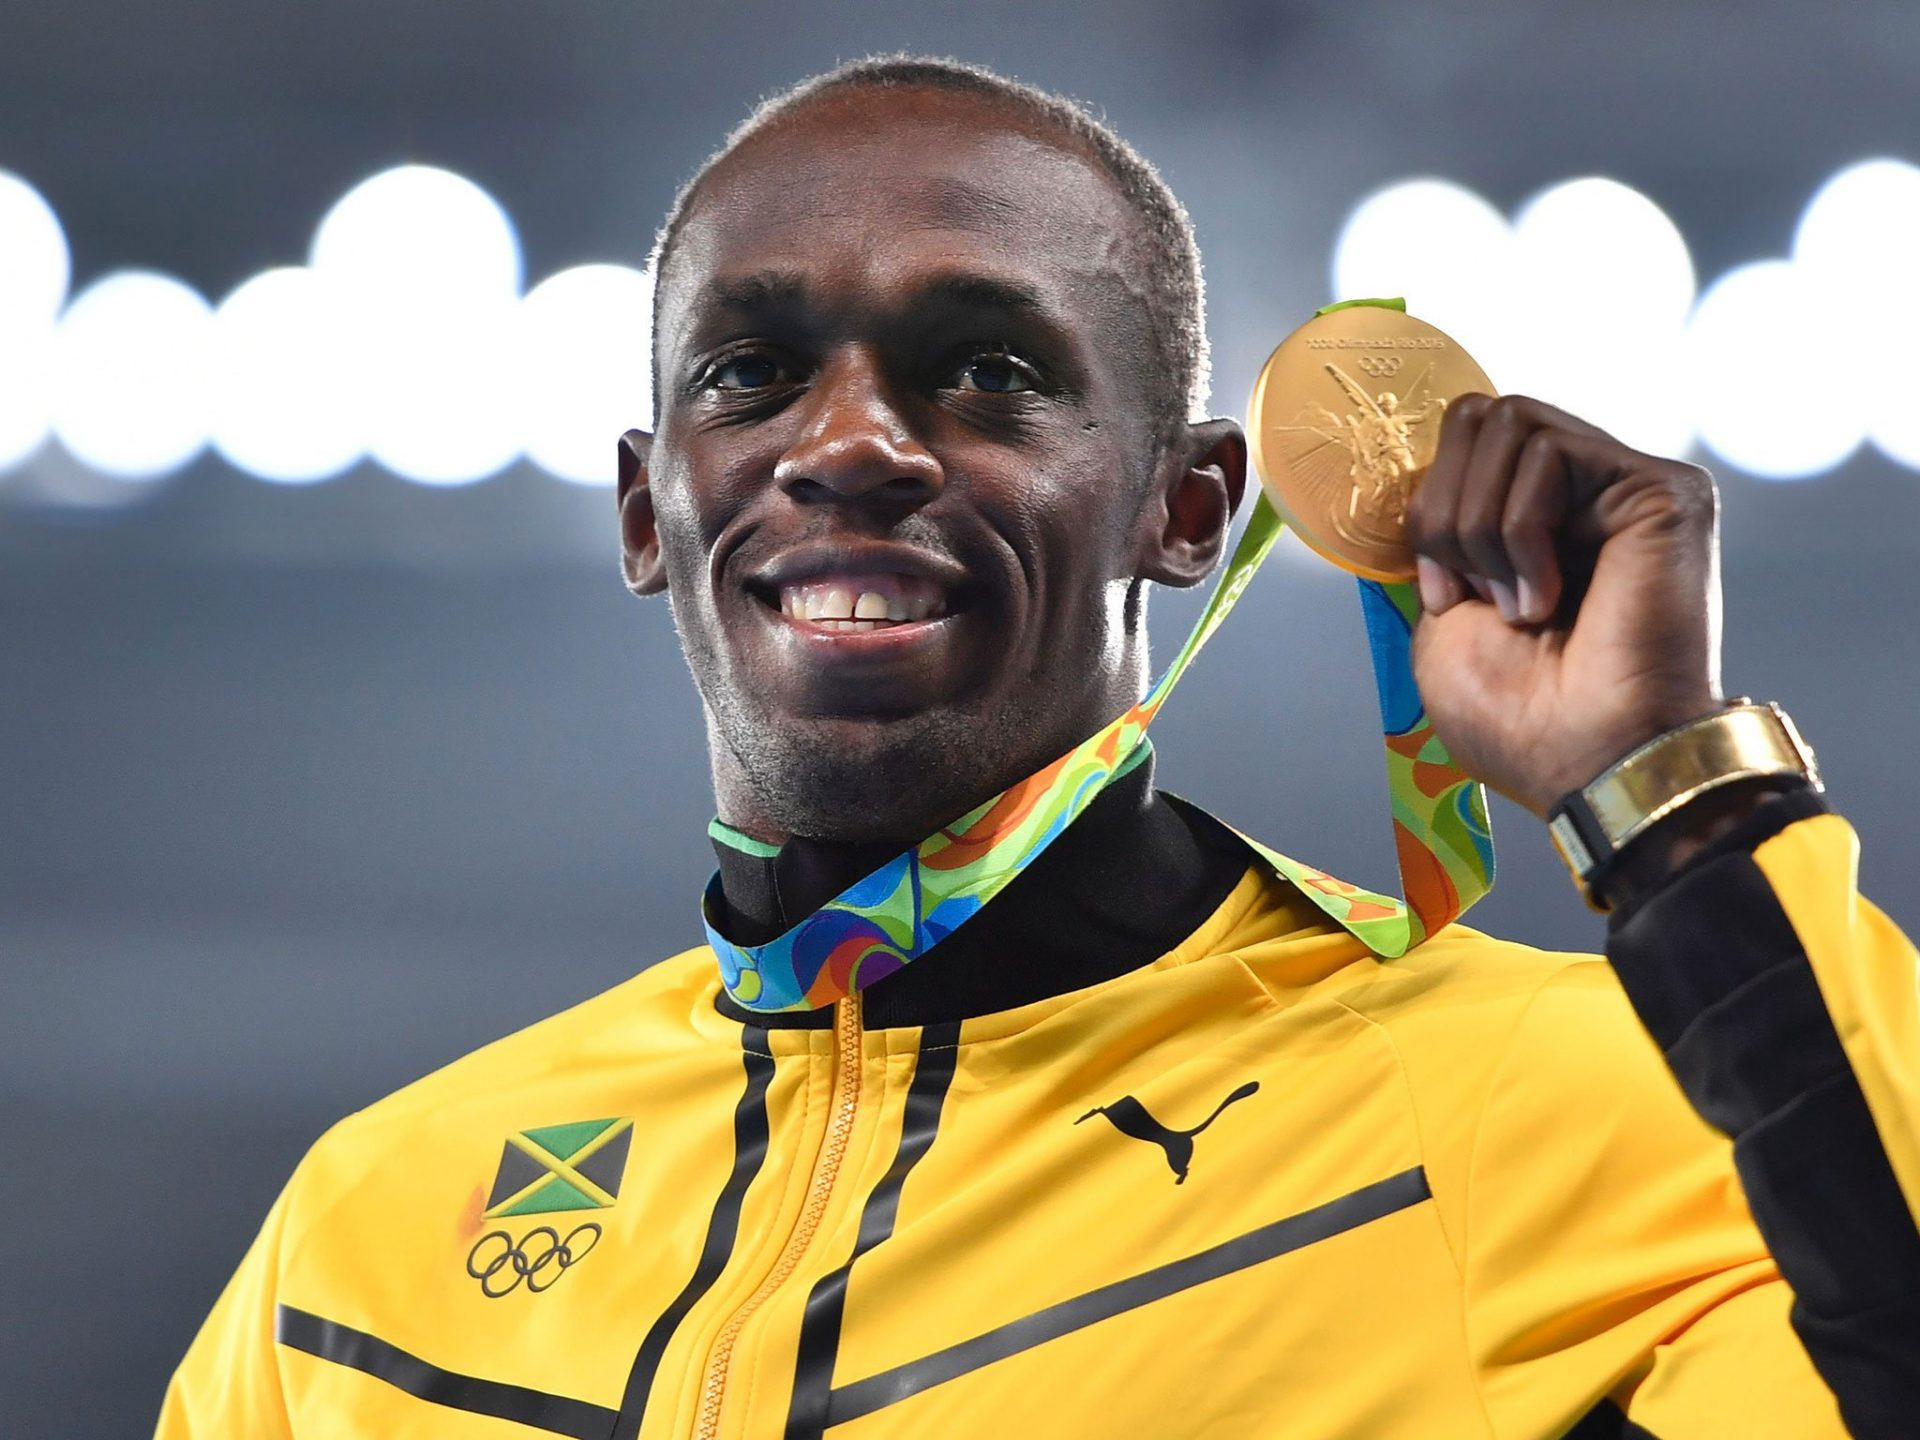 Usain Bolt Family Photos, Wife, Father, Mom, Height